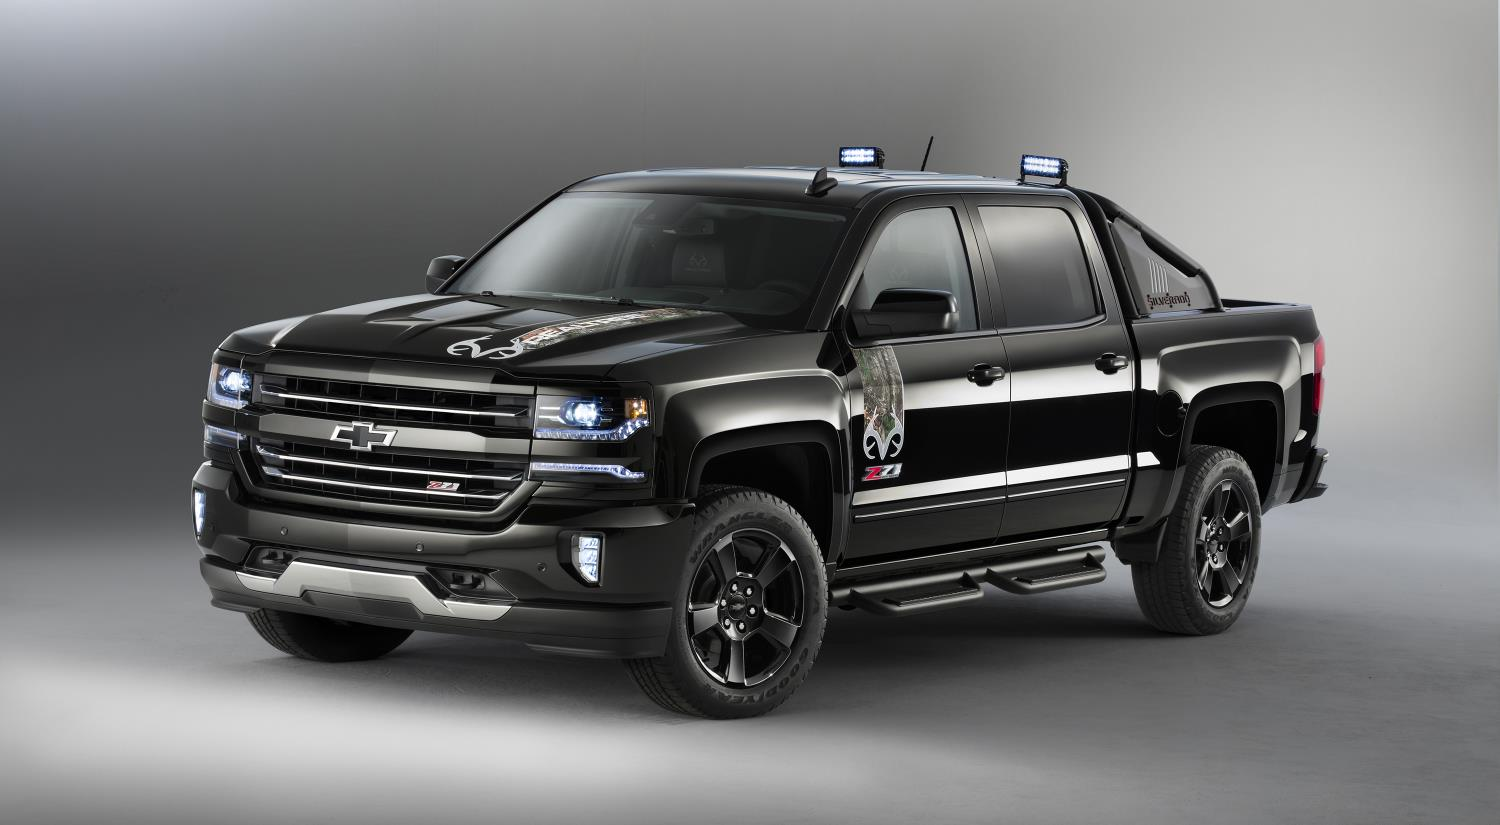 2016 chevrolet silverado rally edition debuts at texas motor speedway autoevolution. Black Bedroom Furniture Sets. Home Design Ideas